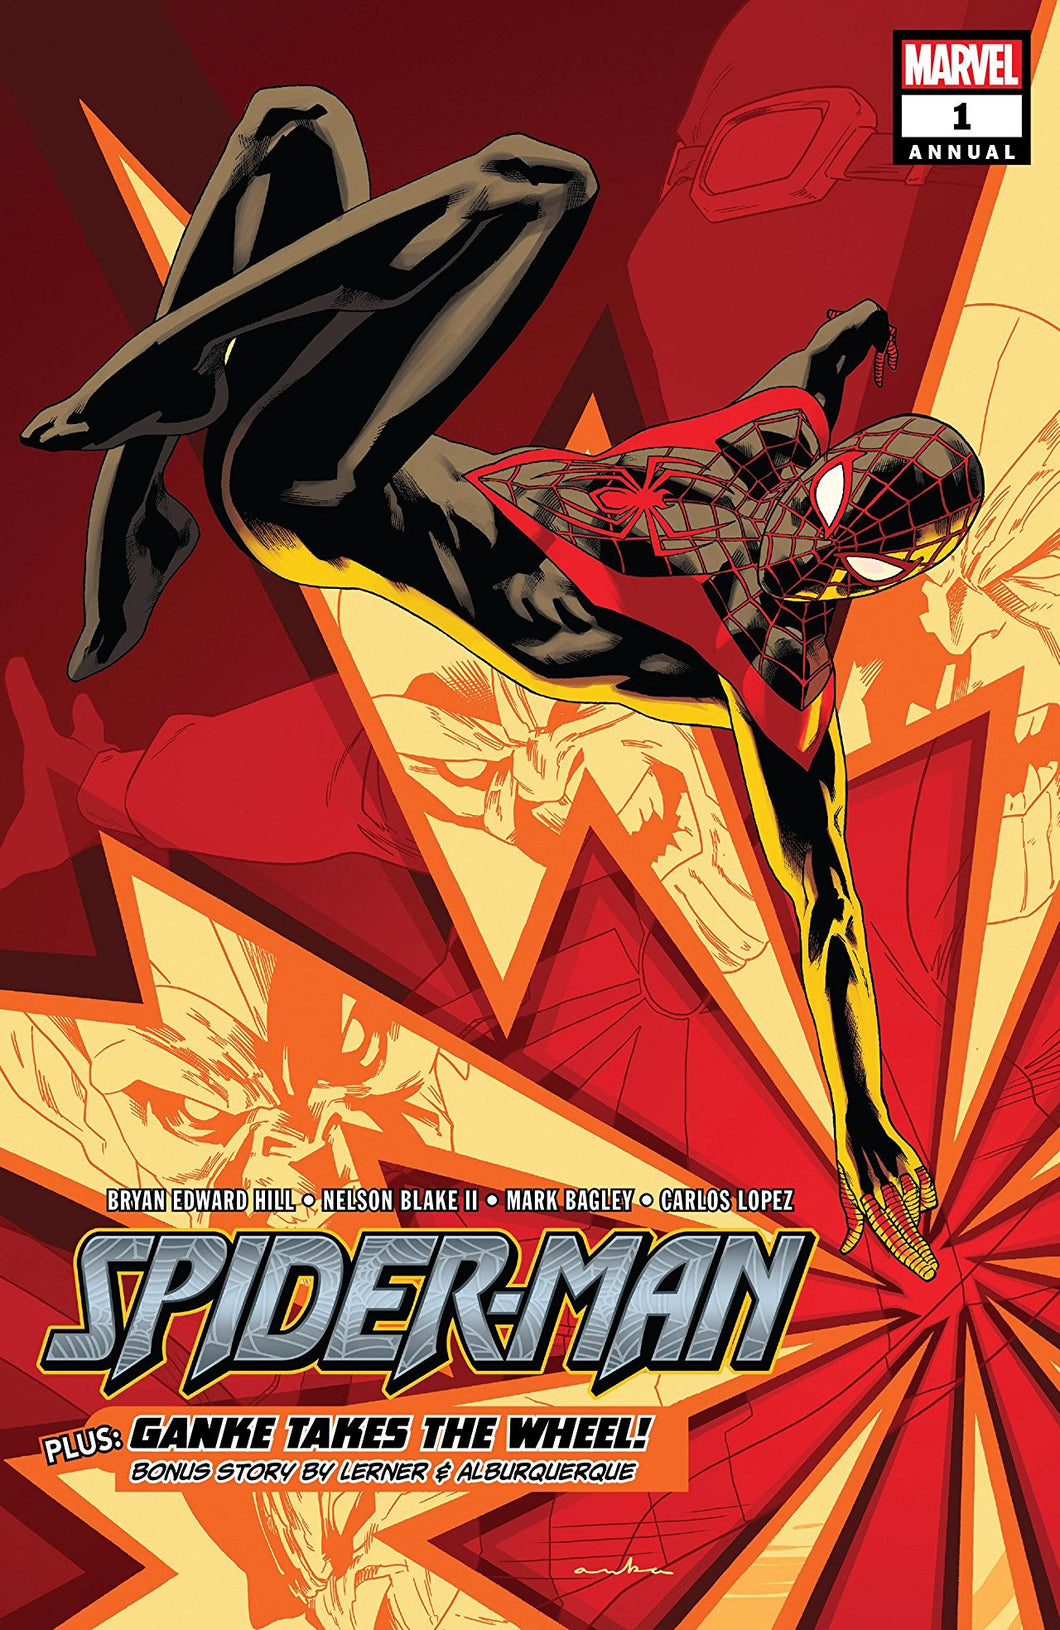 SPIDER-MAN ANNUAL #1 (08/08/2018)